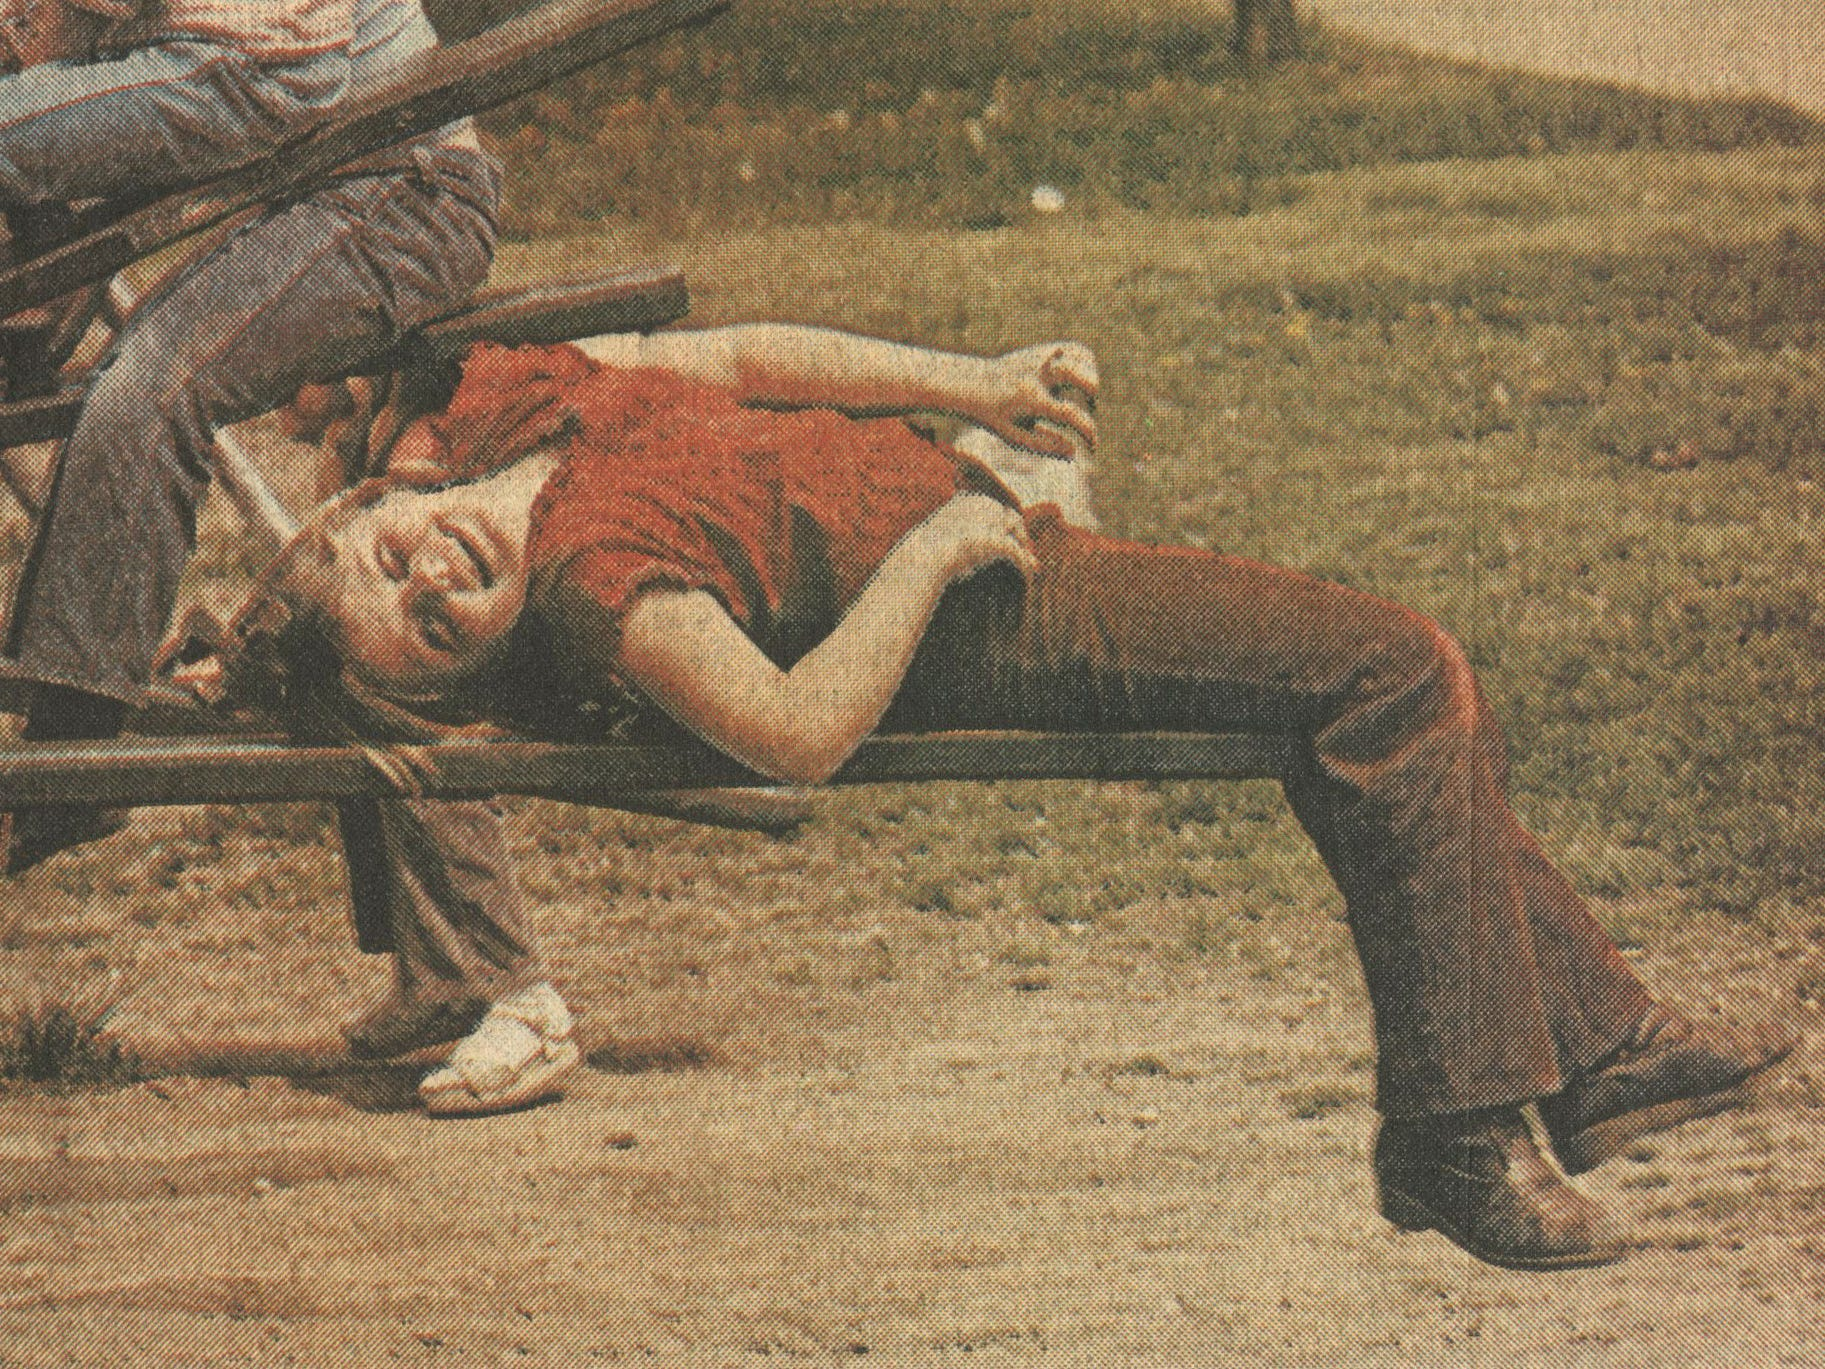 Julie Wharton, a third-grader at Boyd Elementary School, looks at the world from a different angle as she relaxes upside-down on a teeter-totter during recess in 1984.